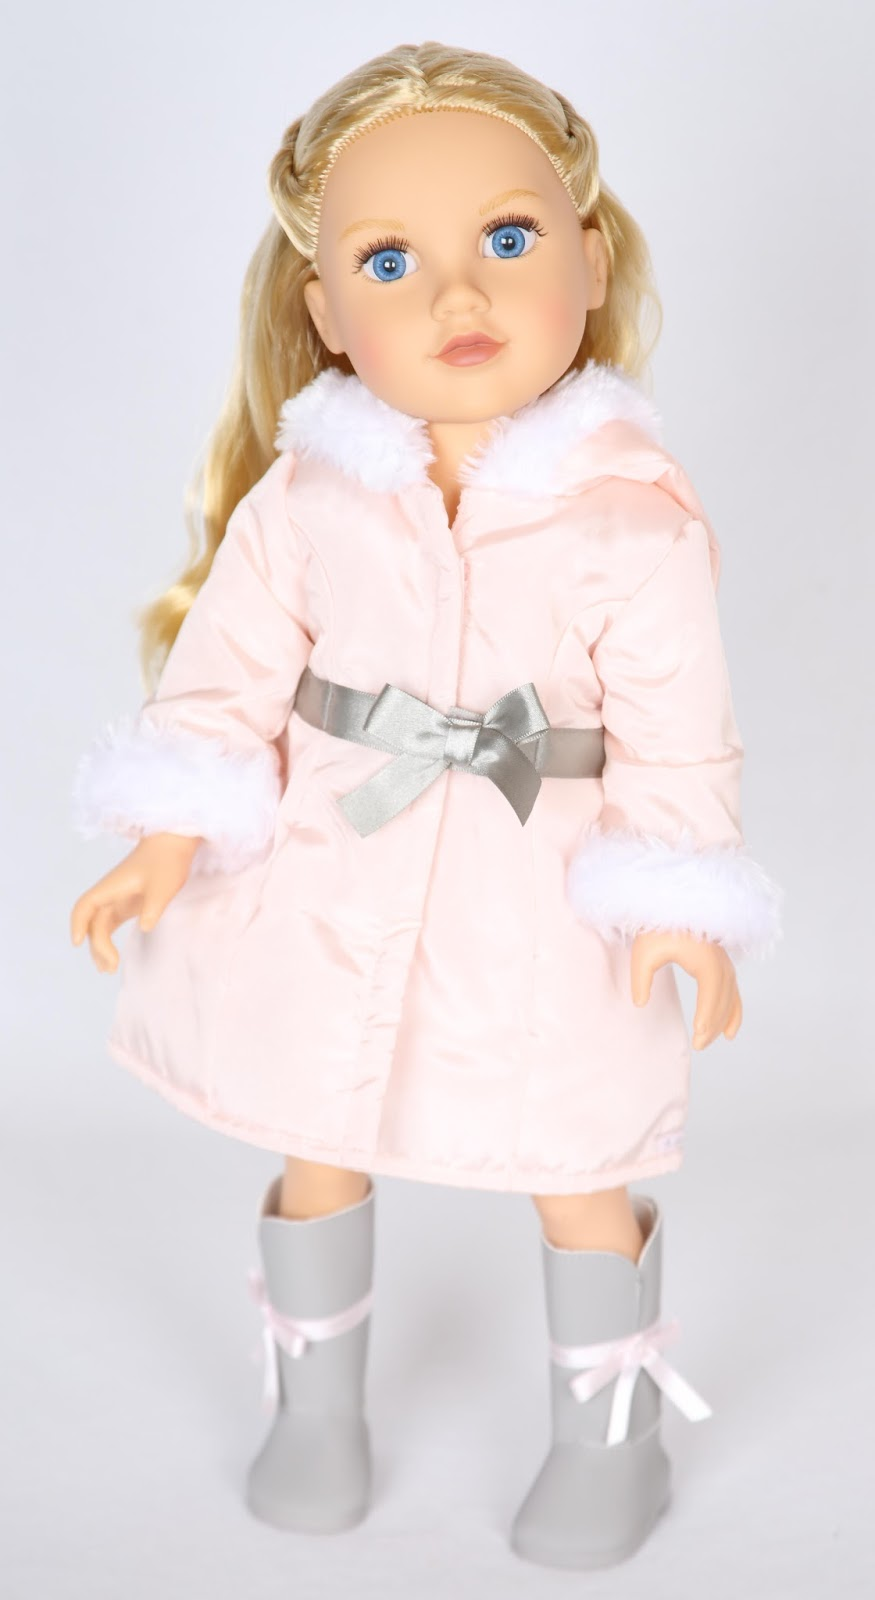 my journey girls dolls adventures meredith 39 s american girl doll coat. Black Bedroom Furniture Sets. Home Design Ideas